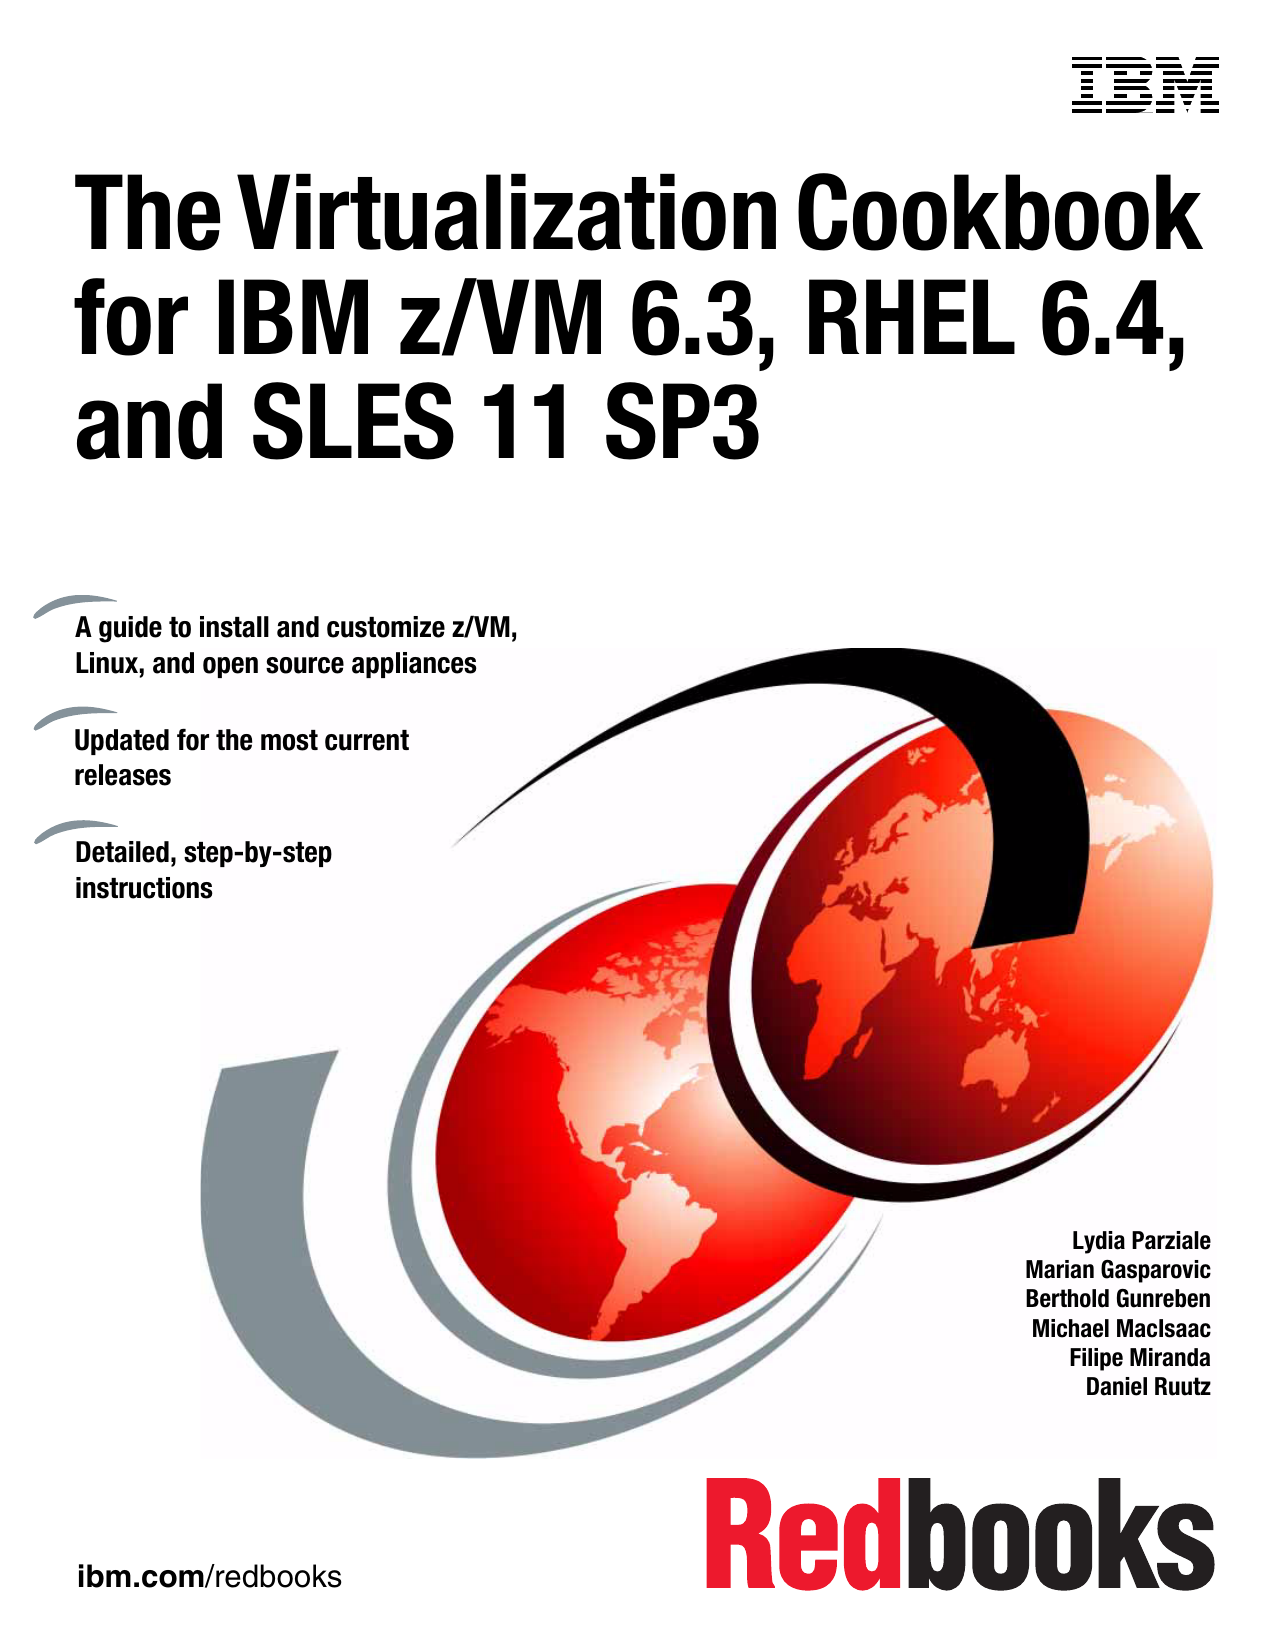 The Virtualization Cookbook for IBM z/VM 6.3.